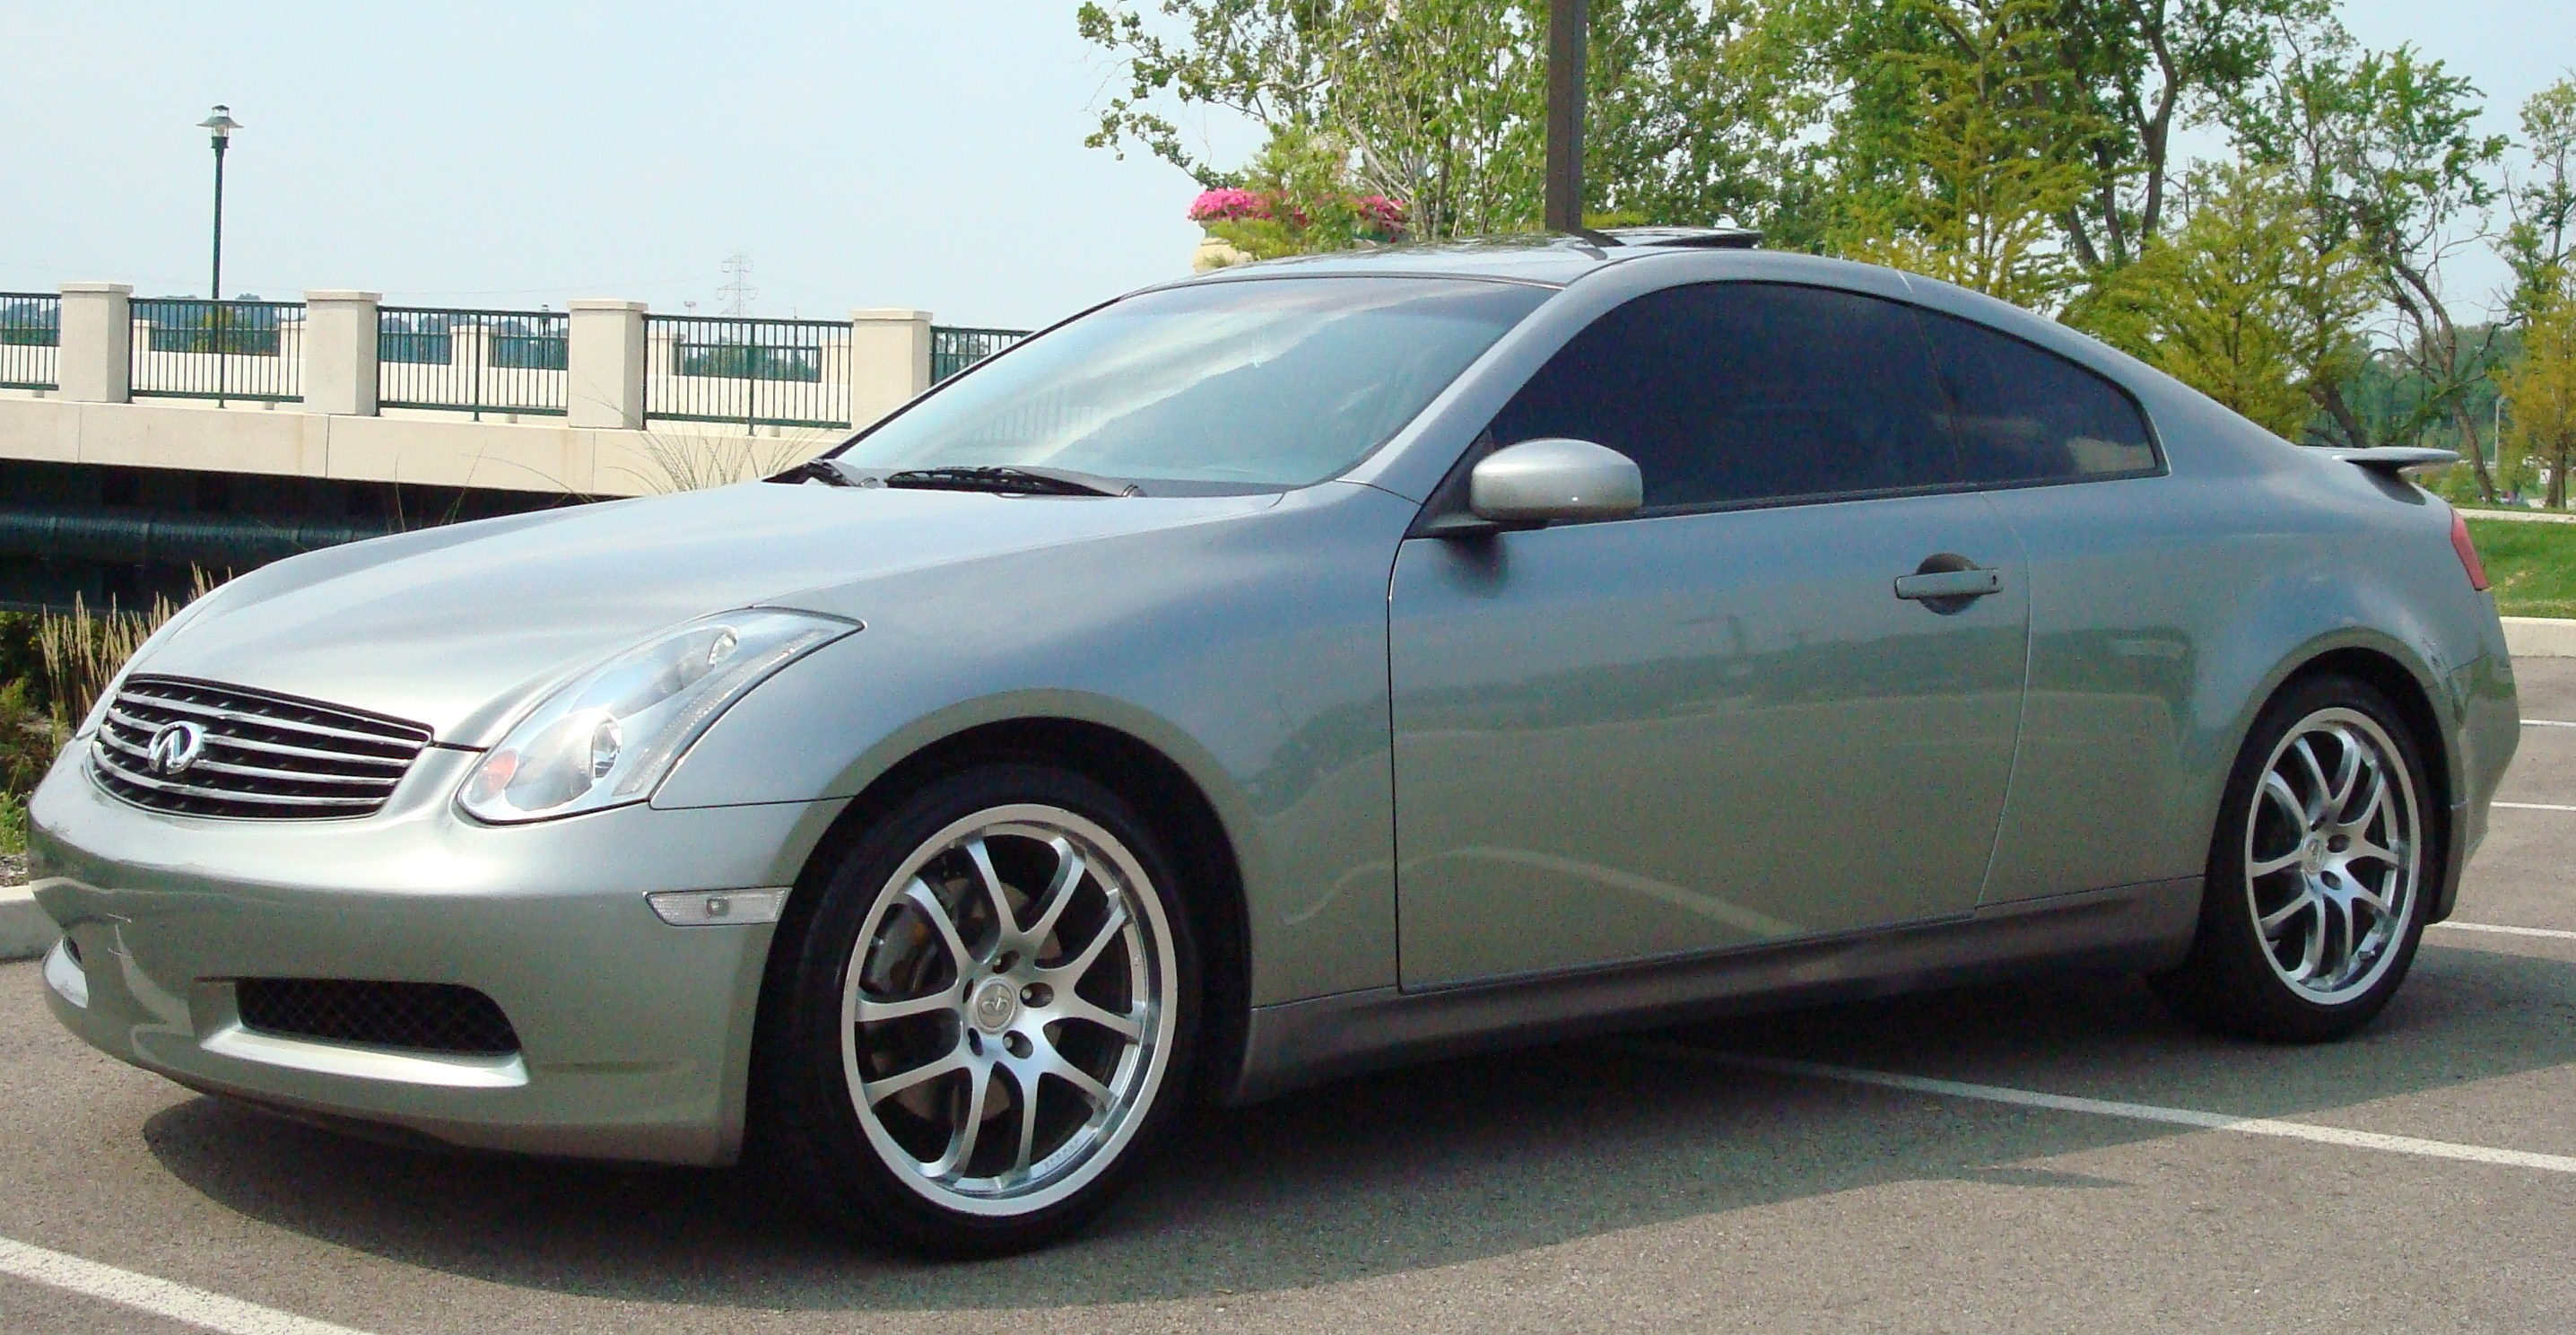 For sale 2005 infiniti g35 coupe w 24510 miles lotustalk for sale 2005 infiniti g35 coupe w 24510 miles lotustalk the lotus cars community vanachro Choice Image